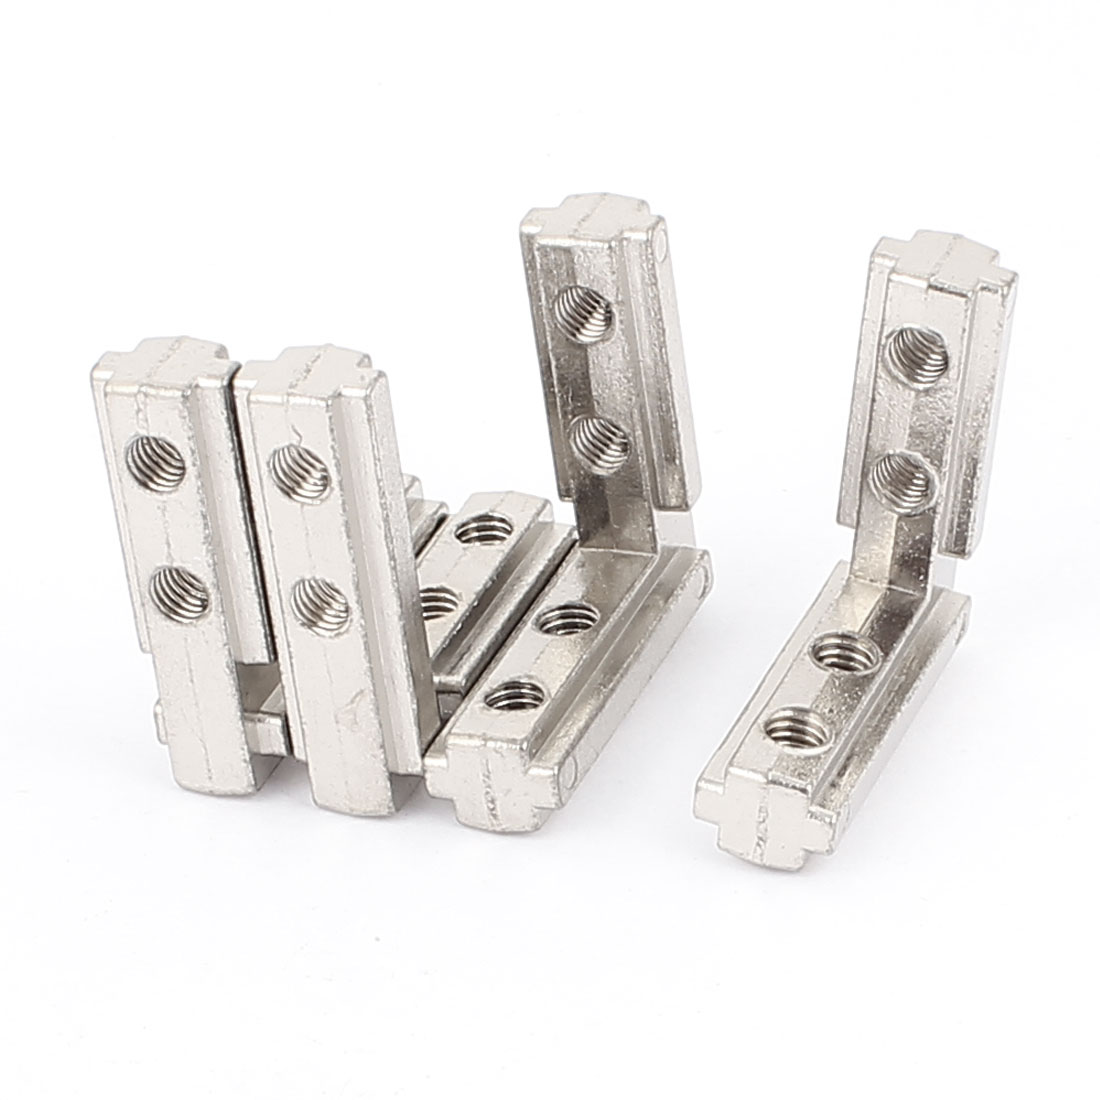 40mm x 40mm T Slot Right Angle Bracket Connector Silver Tone 4pcs